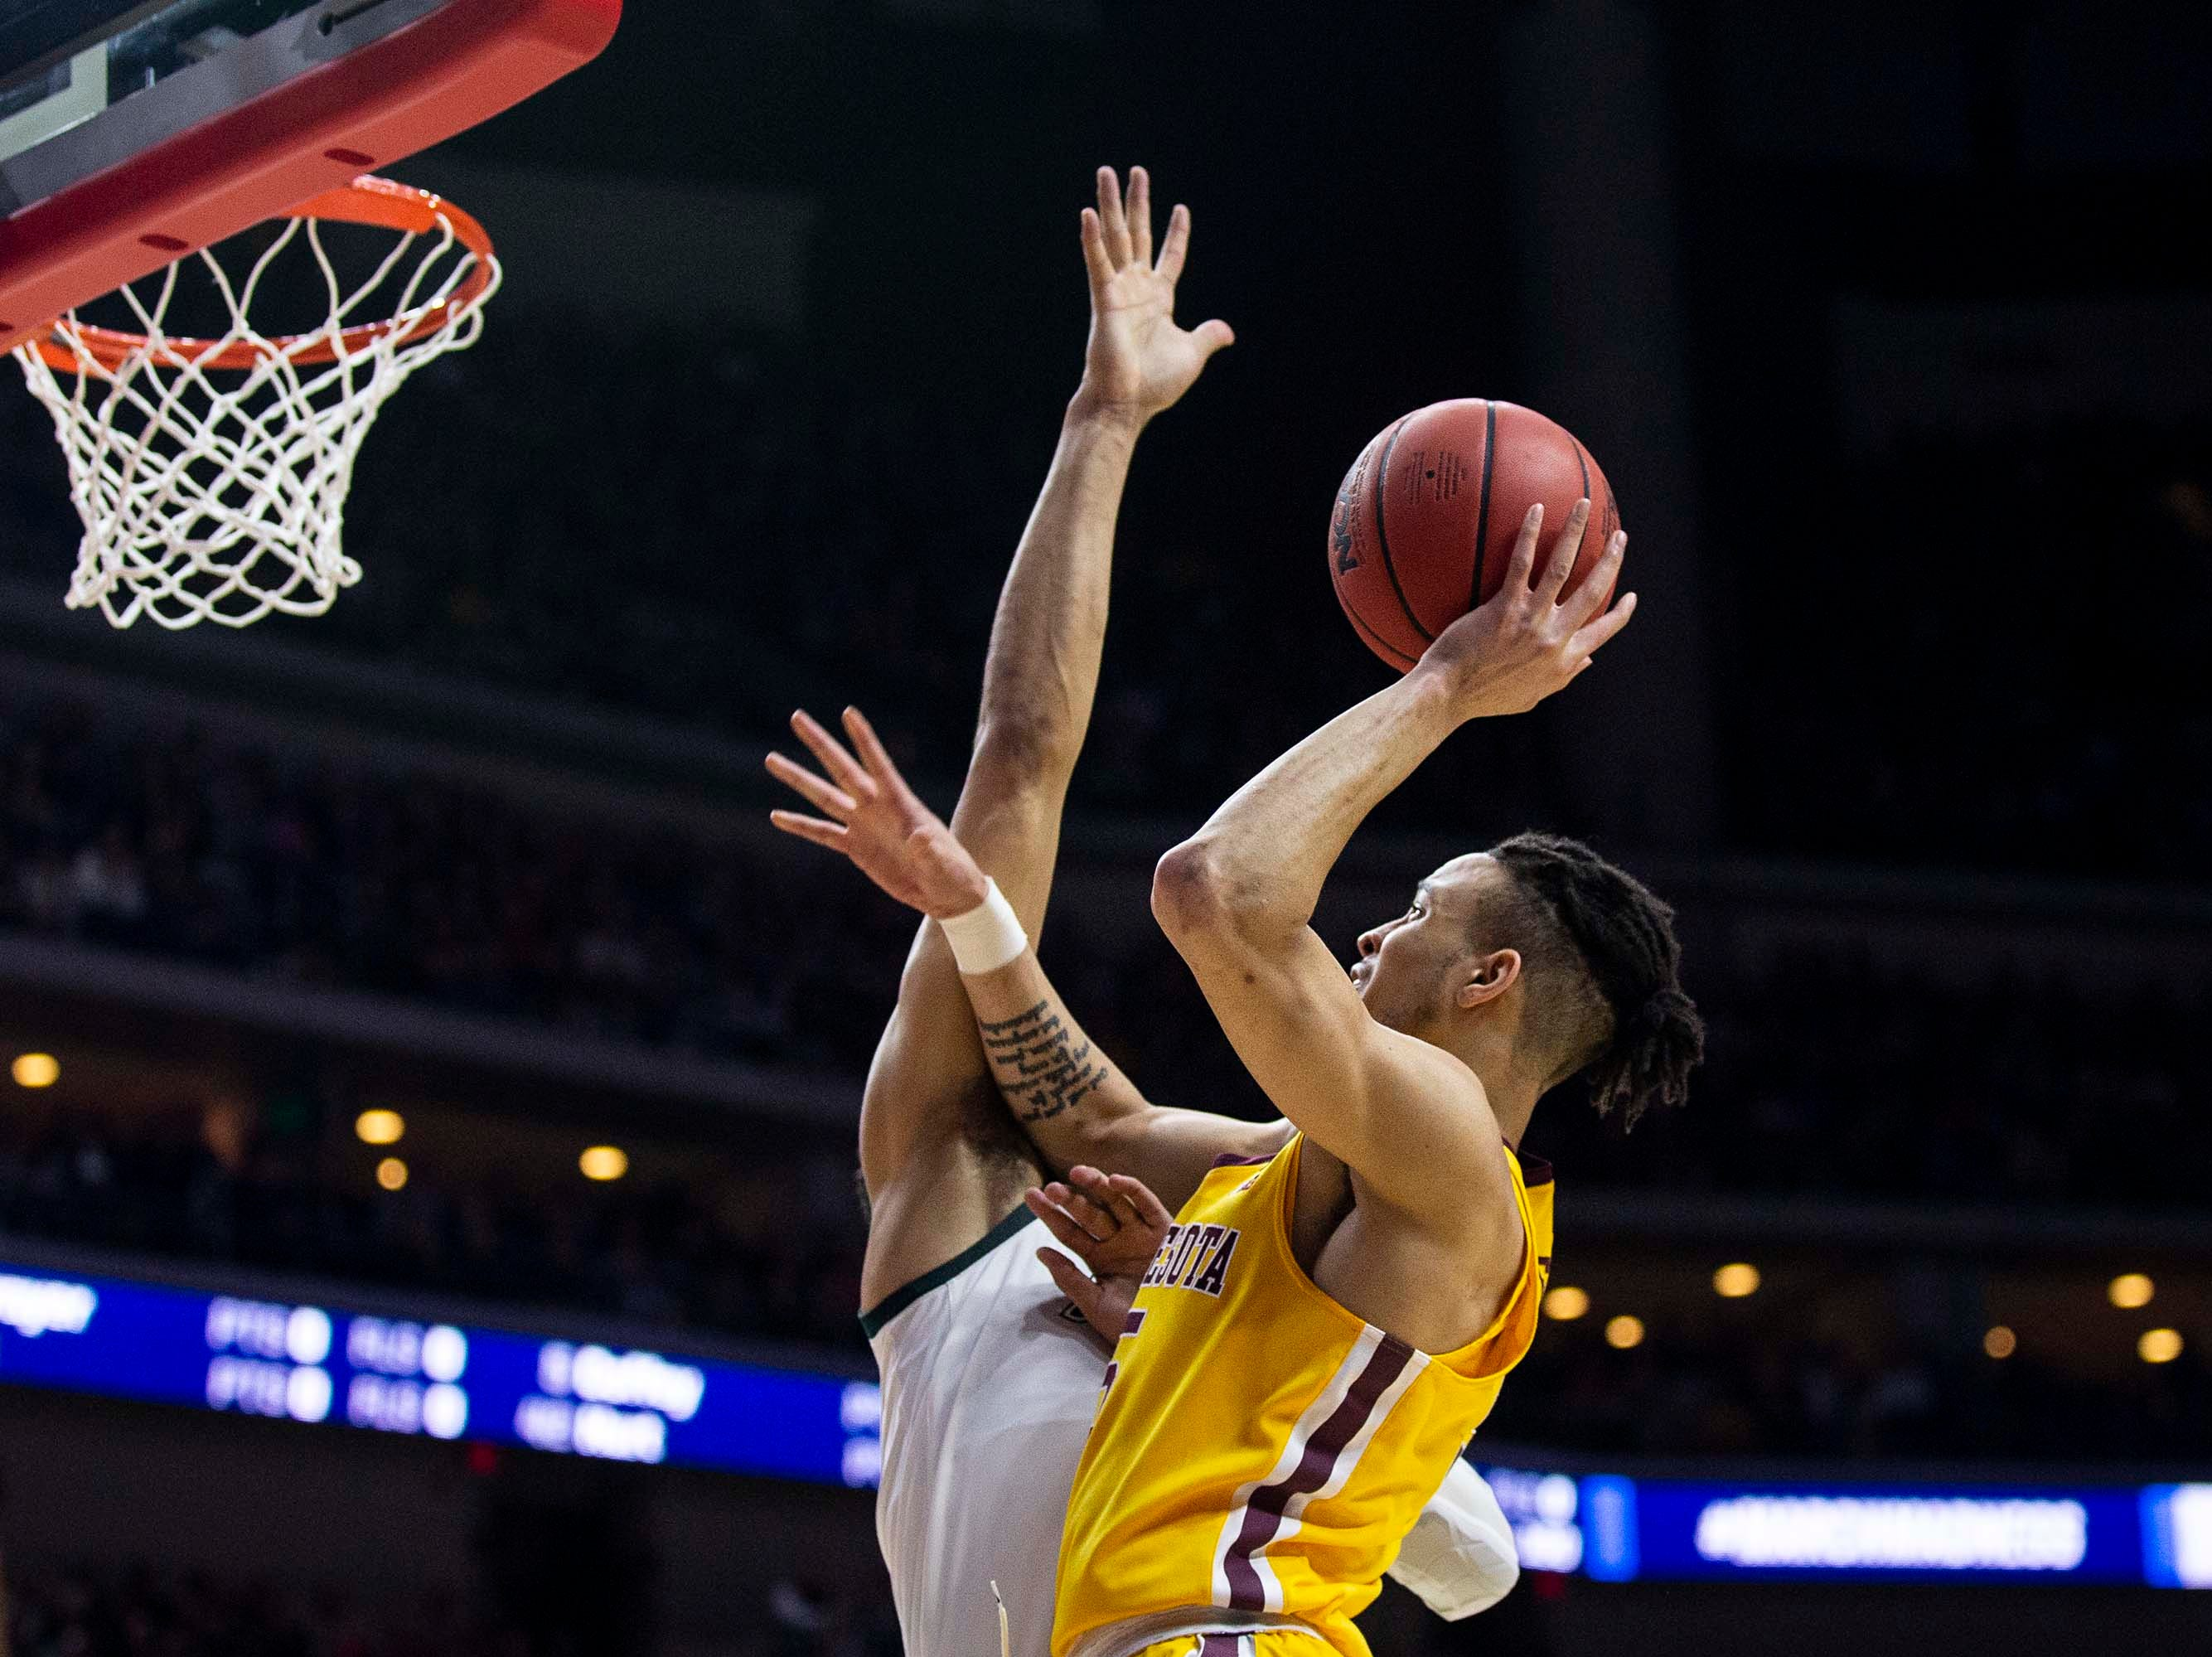 Minnesota's Amir Coffey shoots the ball during the NCAA Tournament second-round match-up between Minnesota and Michigan State on Saturday, March 23, 2019, in Wells Fargo Arena in Des Moines, Iowa.